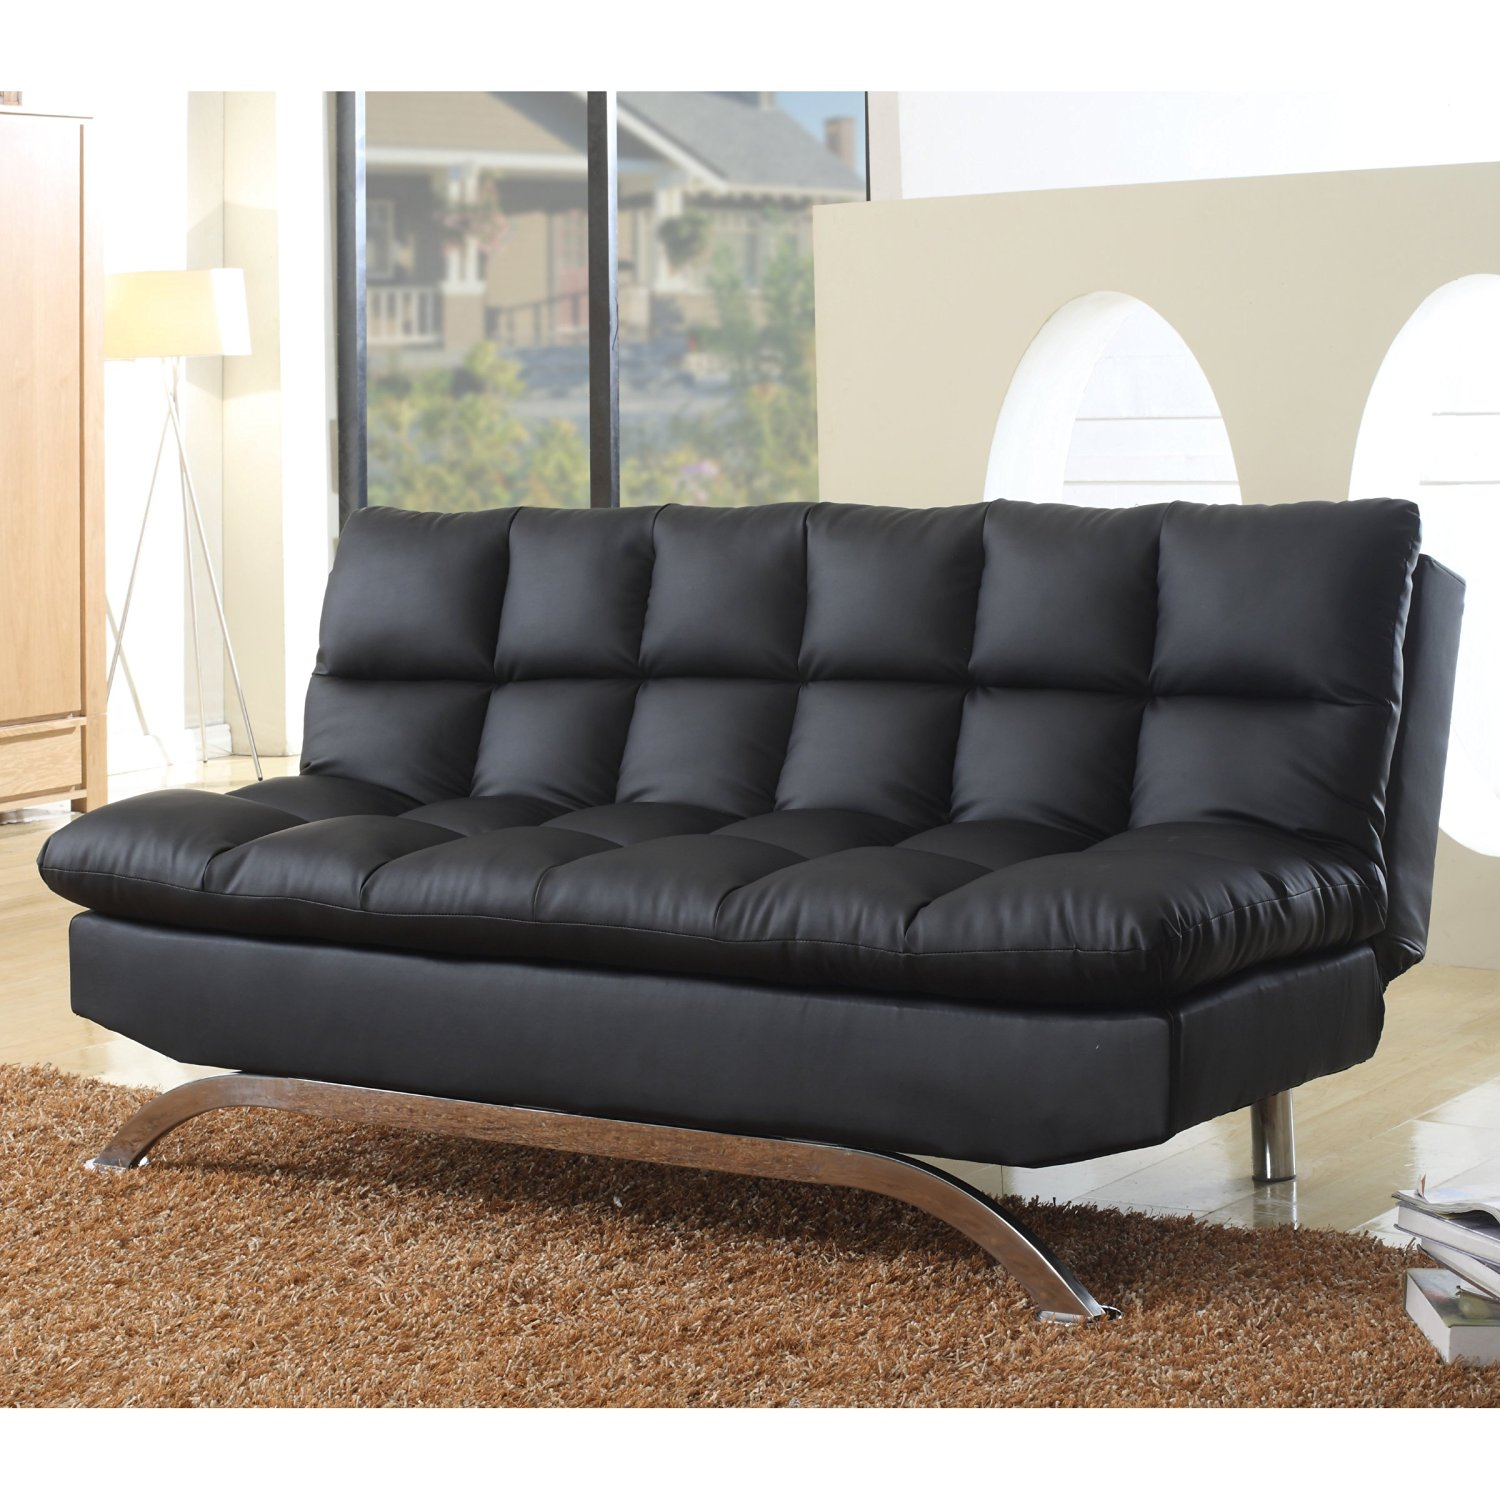 Modern Luxury Quality Futon Sofa Bed Chair Lounge Loveseat Home Office Bedroom Living Room Furniture